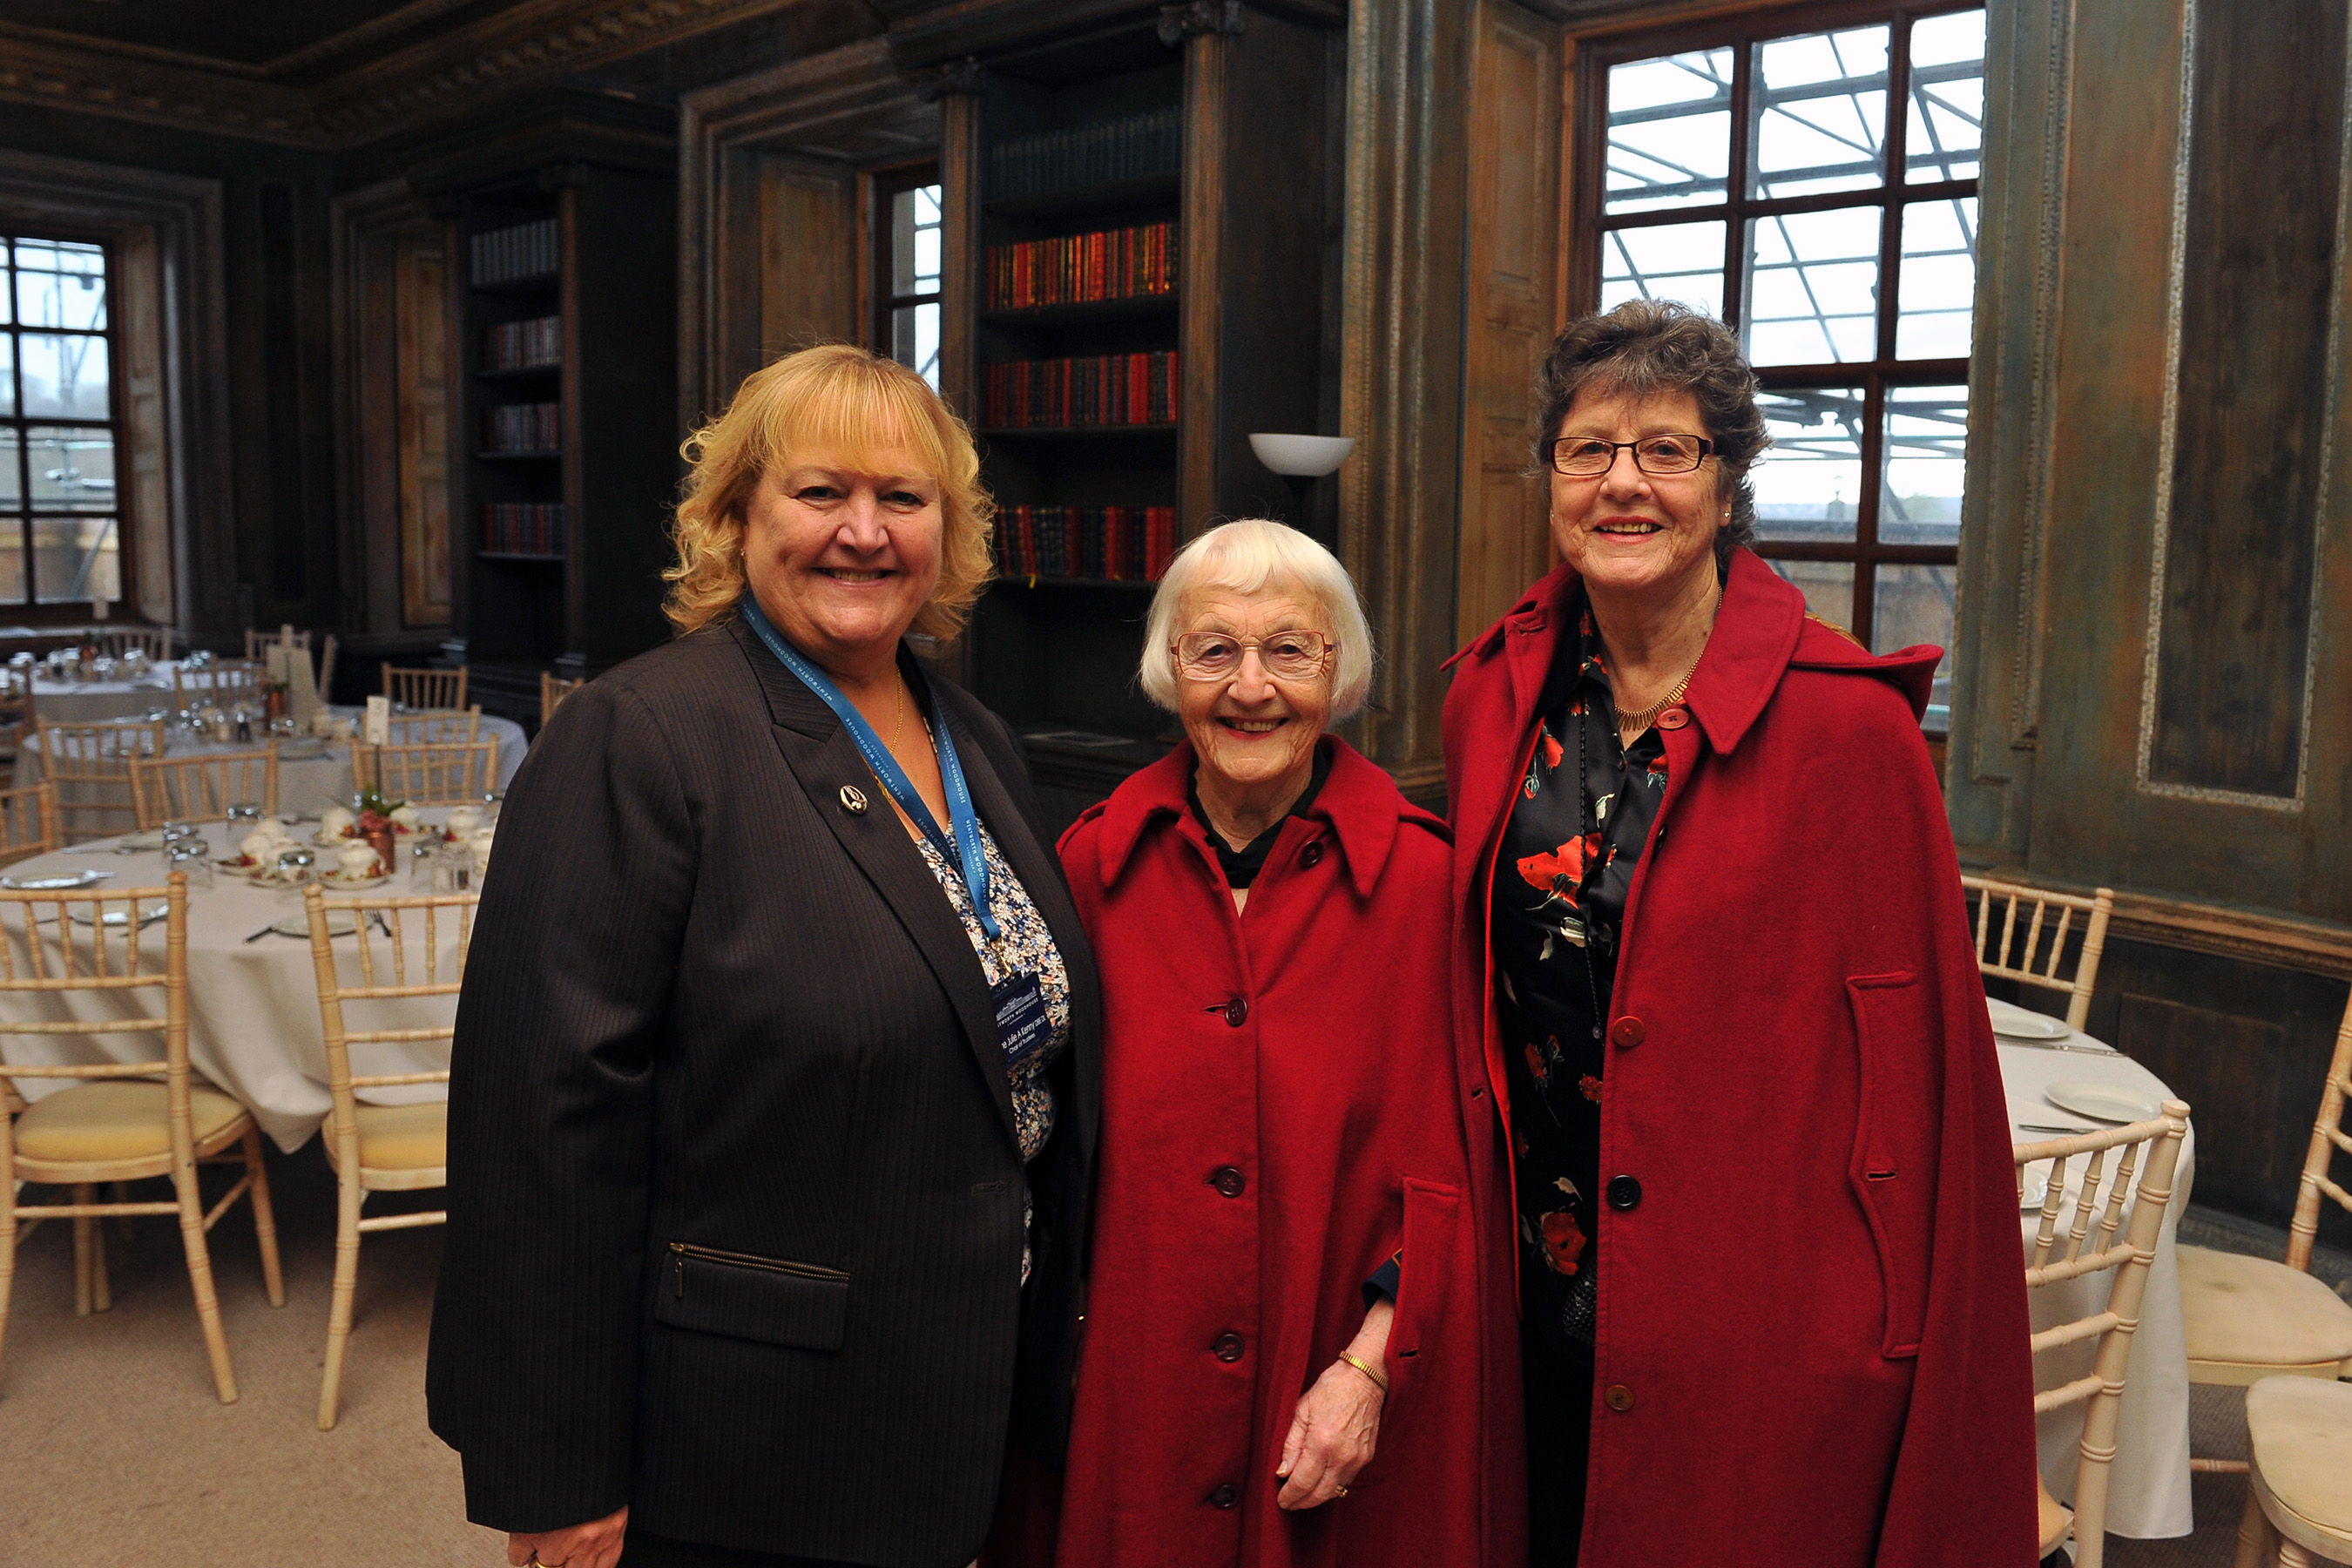 Former students at the Lady Mabel College of Physical Education, recently attended a lunch to celebrate the 70th anniversary of the college's opening. The lunch took place in the Lower Gallery at Wentworth Woodhouse, which used to be their dining room. Seen at the event (left to right) are: Dame Julie Kenny CBE DL, chair of trustees Wentworth Woodhouse Preservation Trust; Sybil Wilbraham, first student through the door on her 19th birthday, 1949-1952 and Sheila Sherwood, Olympic Long Jumper, student from 1964-1969.